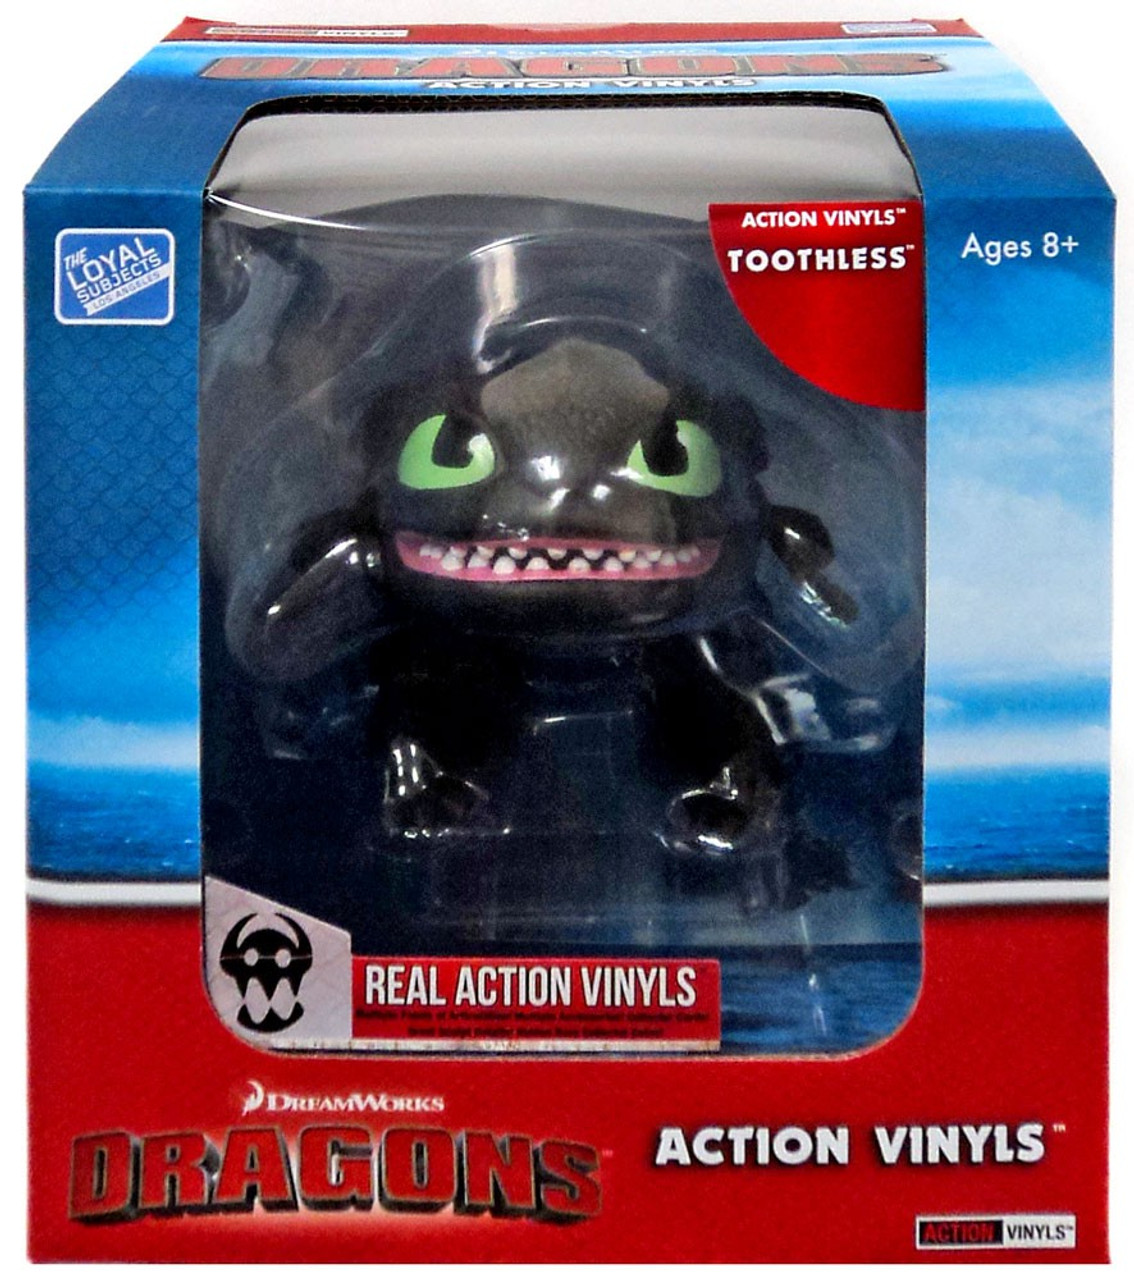 How To Train Your Dragon Action Vinyls Toothless Vinyl